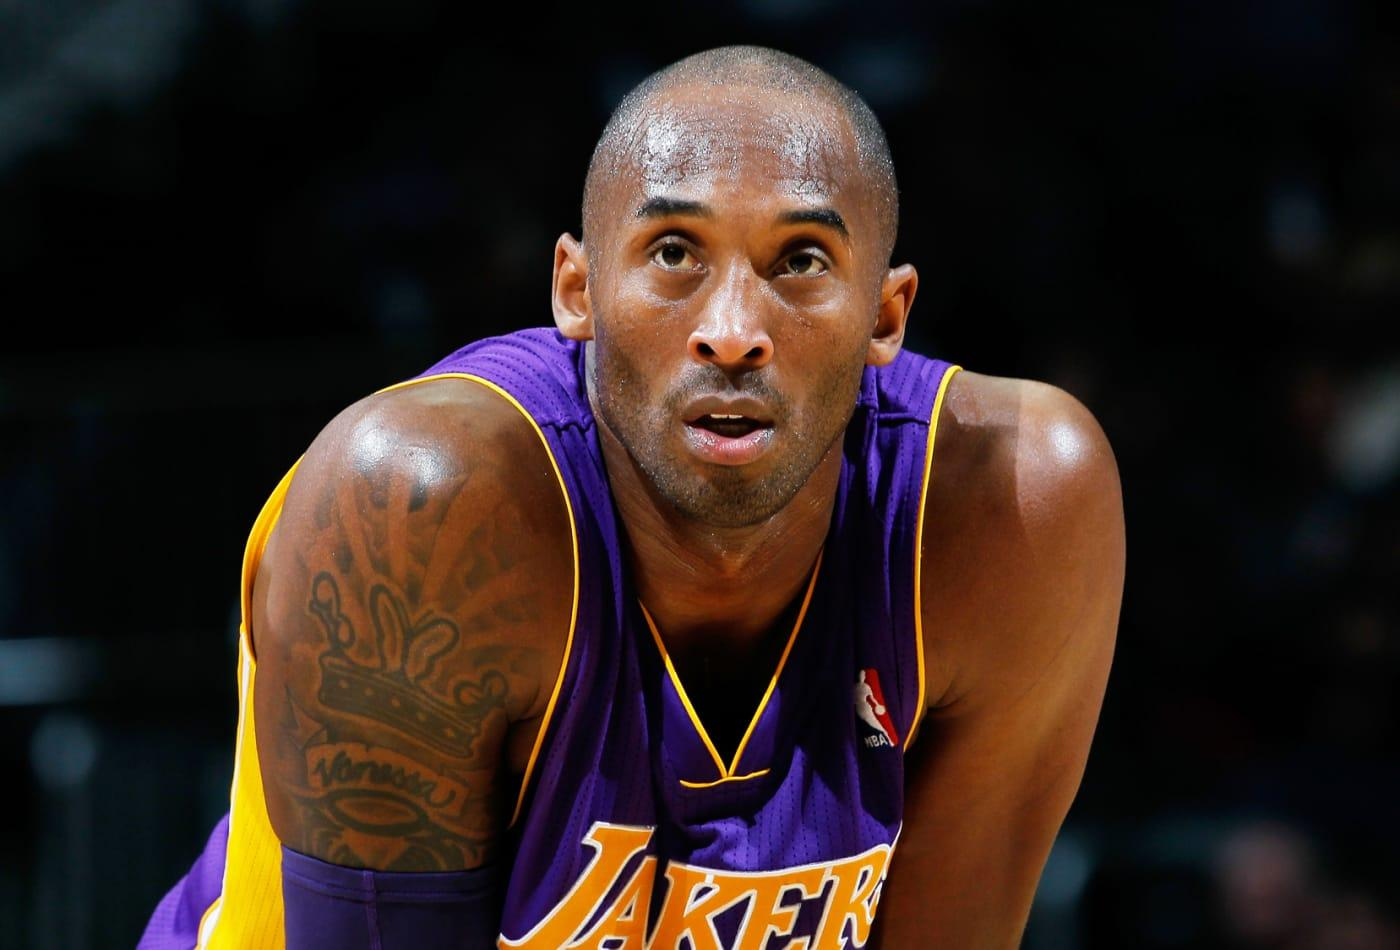 Kobe Bryant Helicopter Crash Witnesses' 911 Calls Released - There Was 'A Boom And Then Dead Sound'